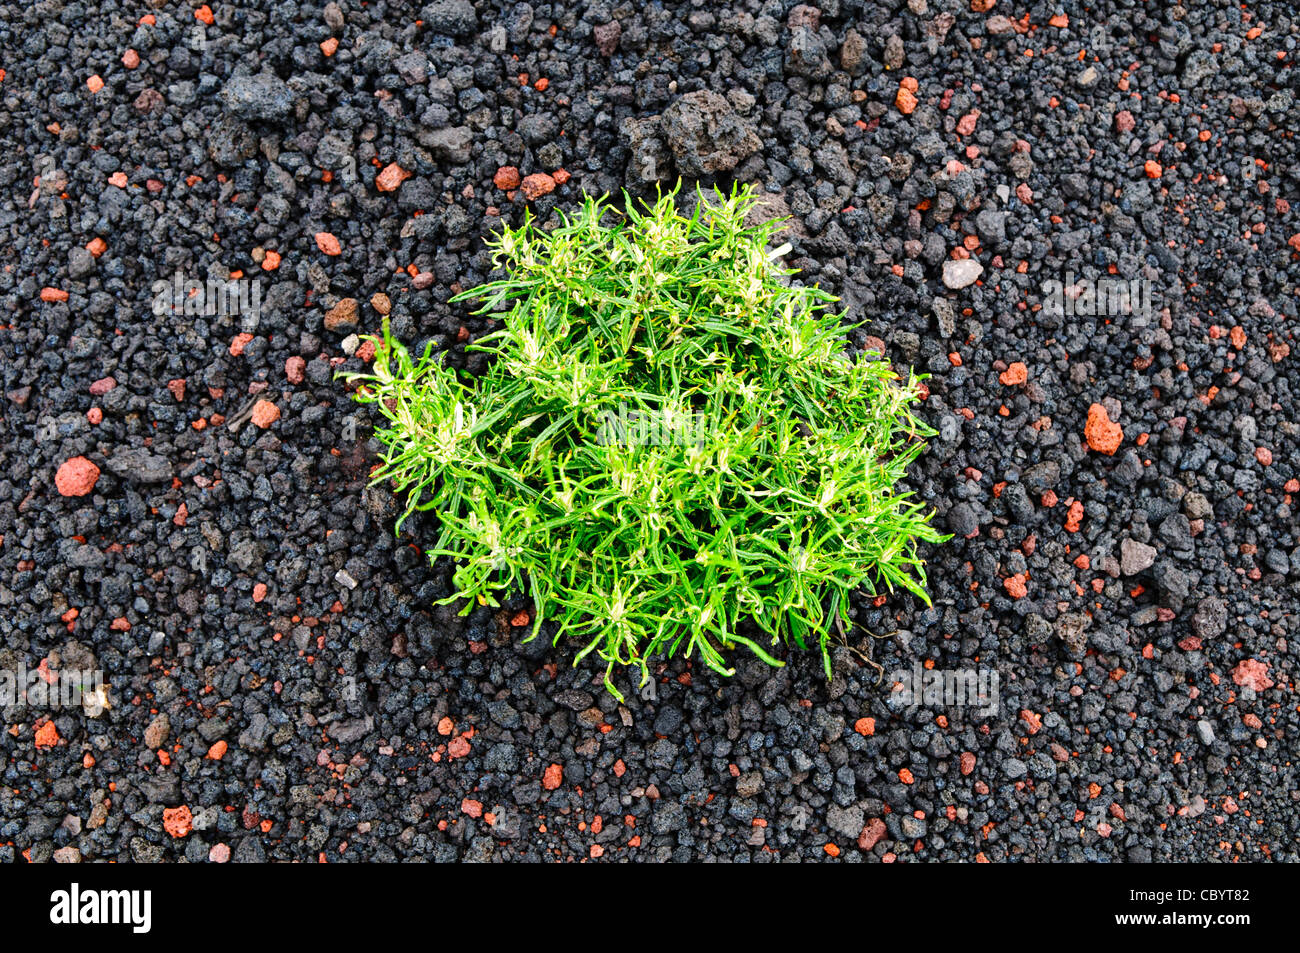 ANTIGUA, Guatemala - A plant manages to grow in the thick layer of volcanic gravel near the summit of Pacaya Volcano. - Stock Image